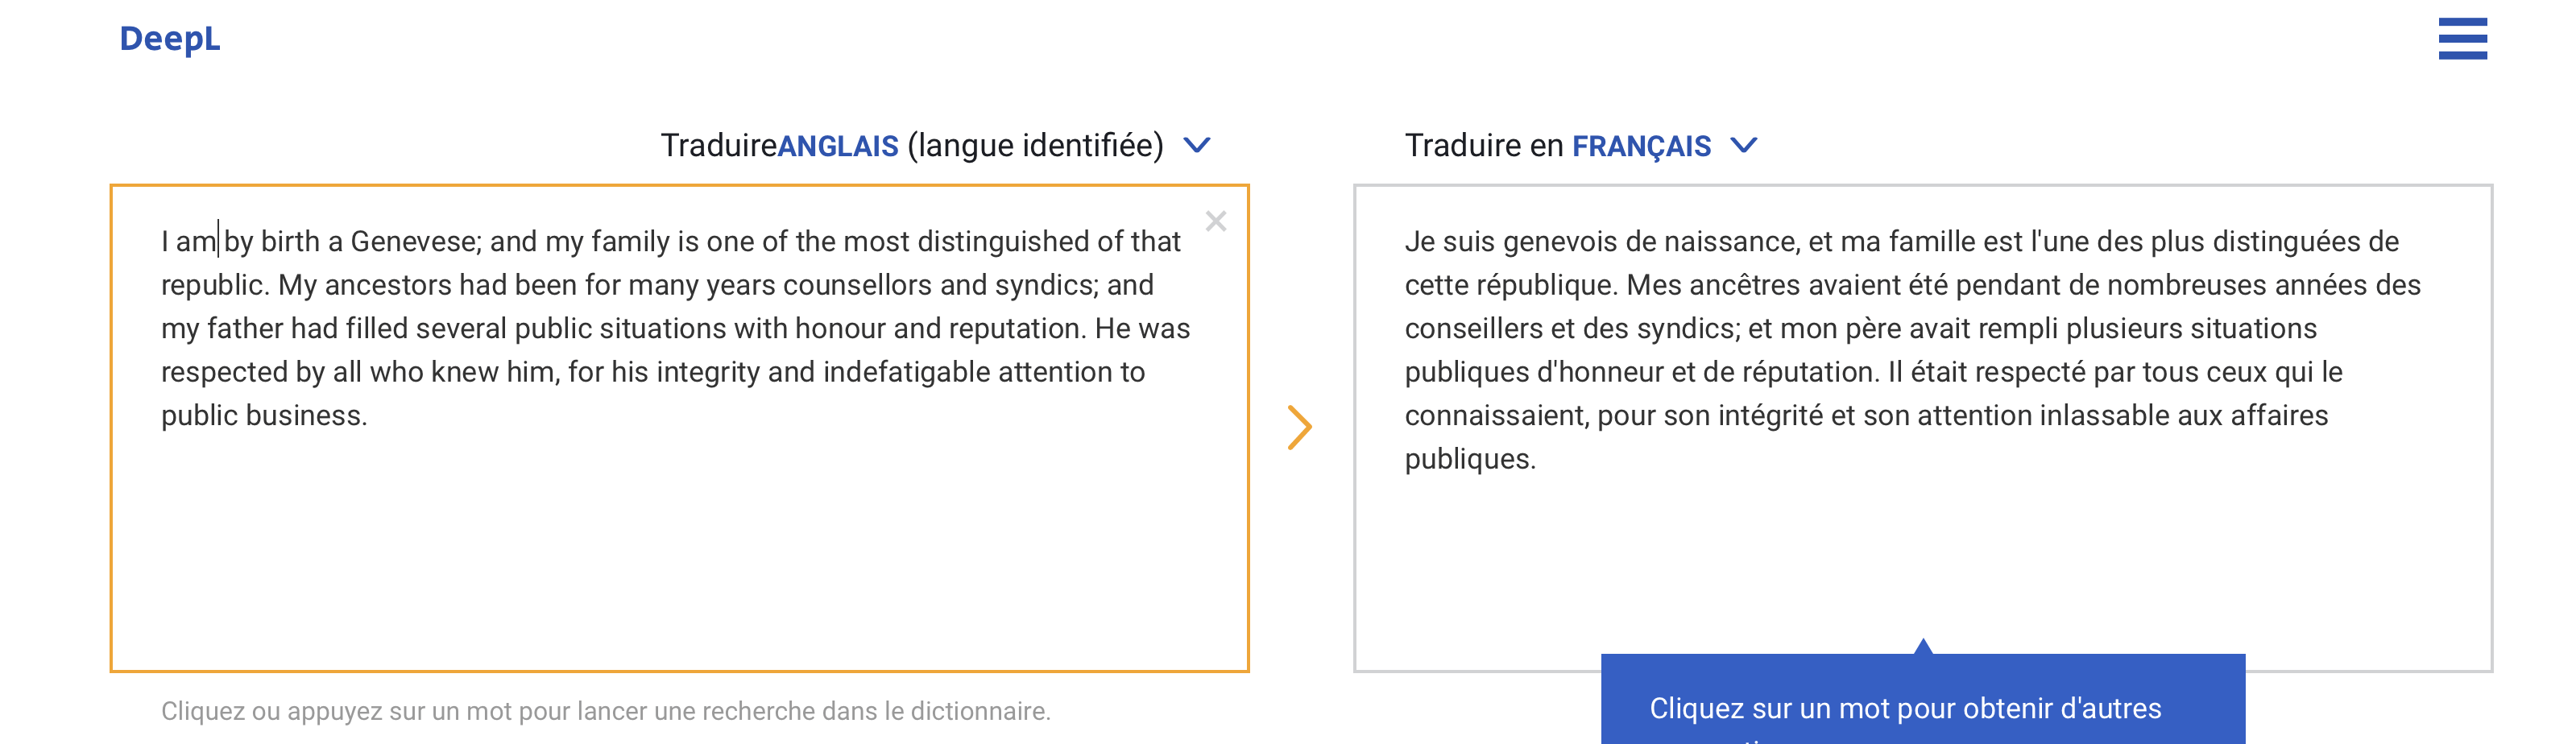 traduction google allemand vers francais